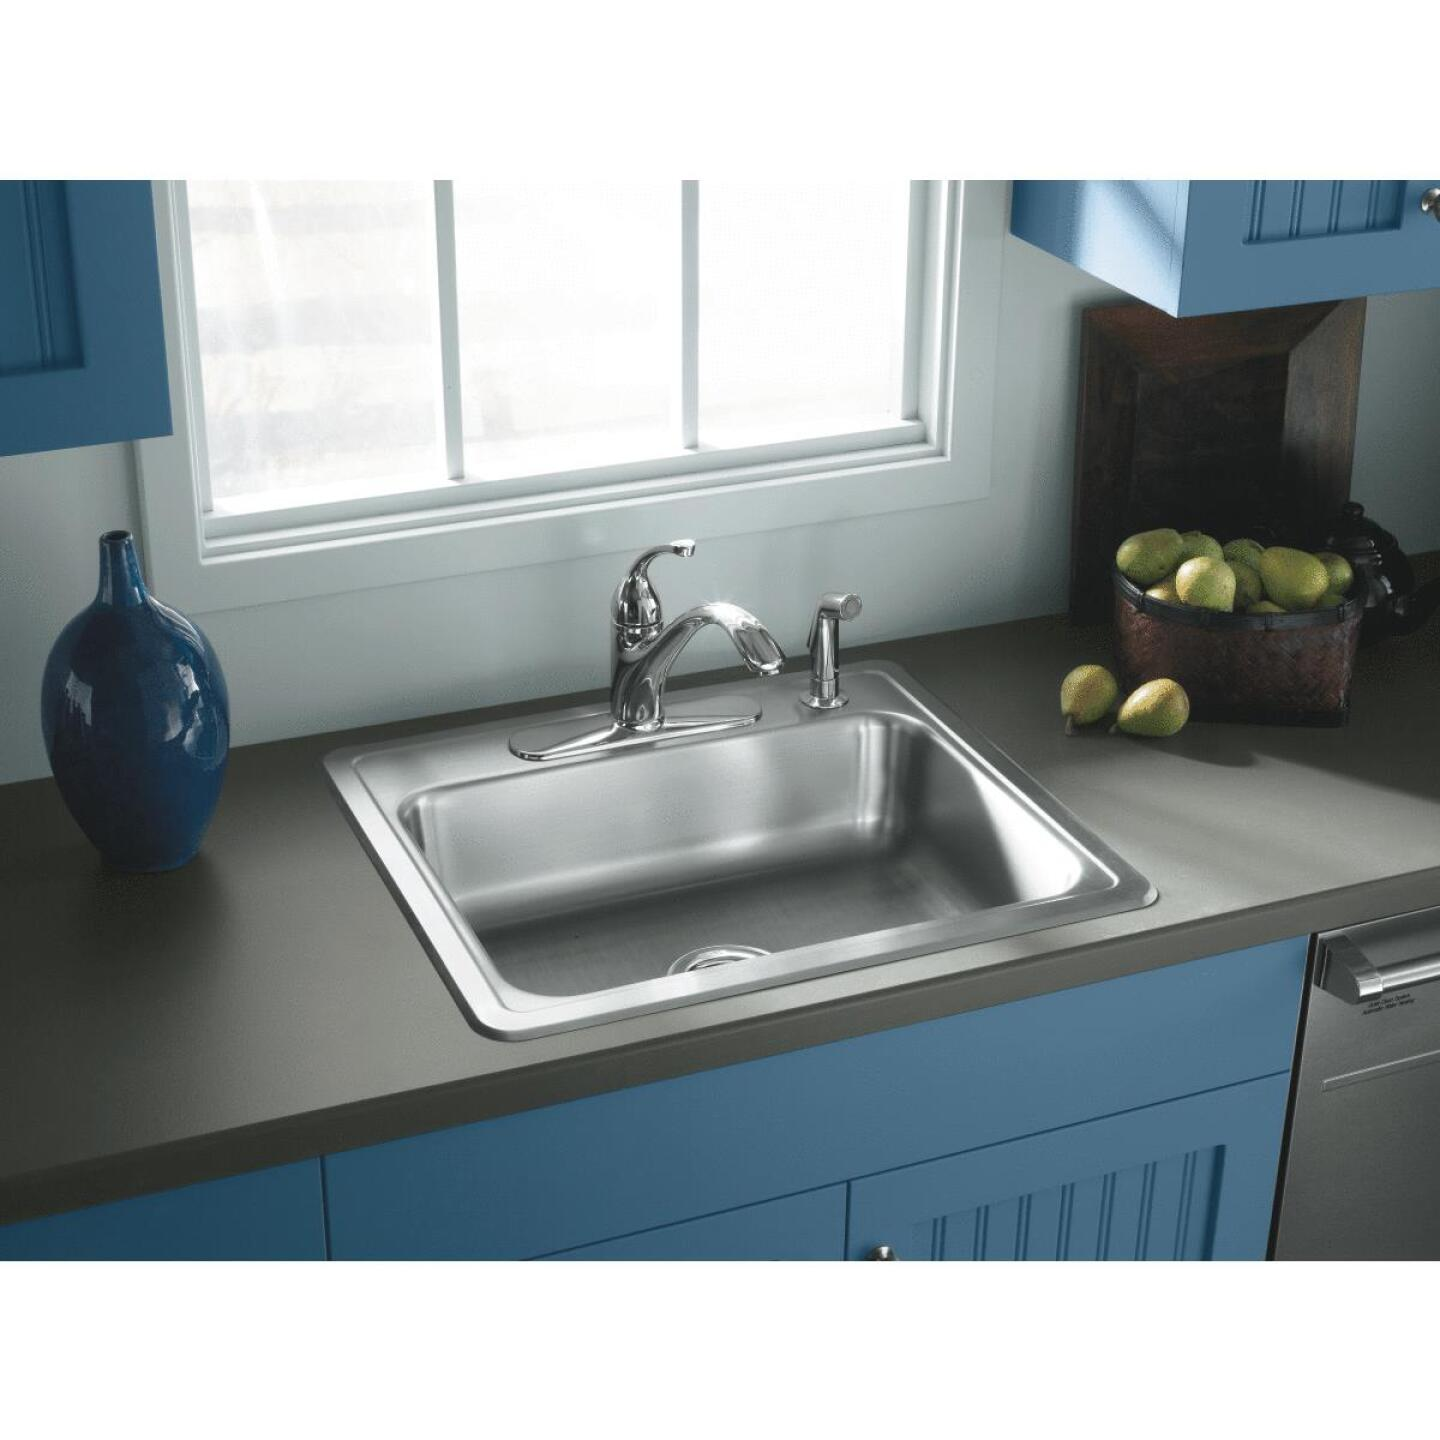 Elkay Single Bowl Sink 6 In. Deep Stainless Steel Image 2